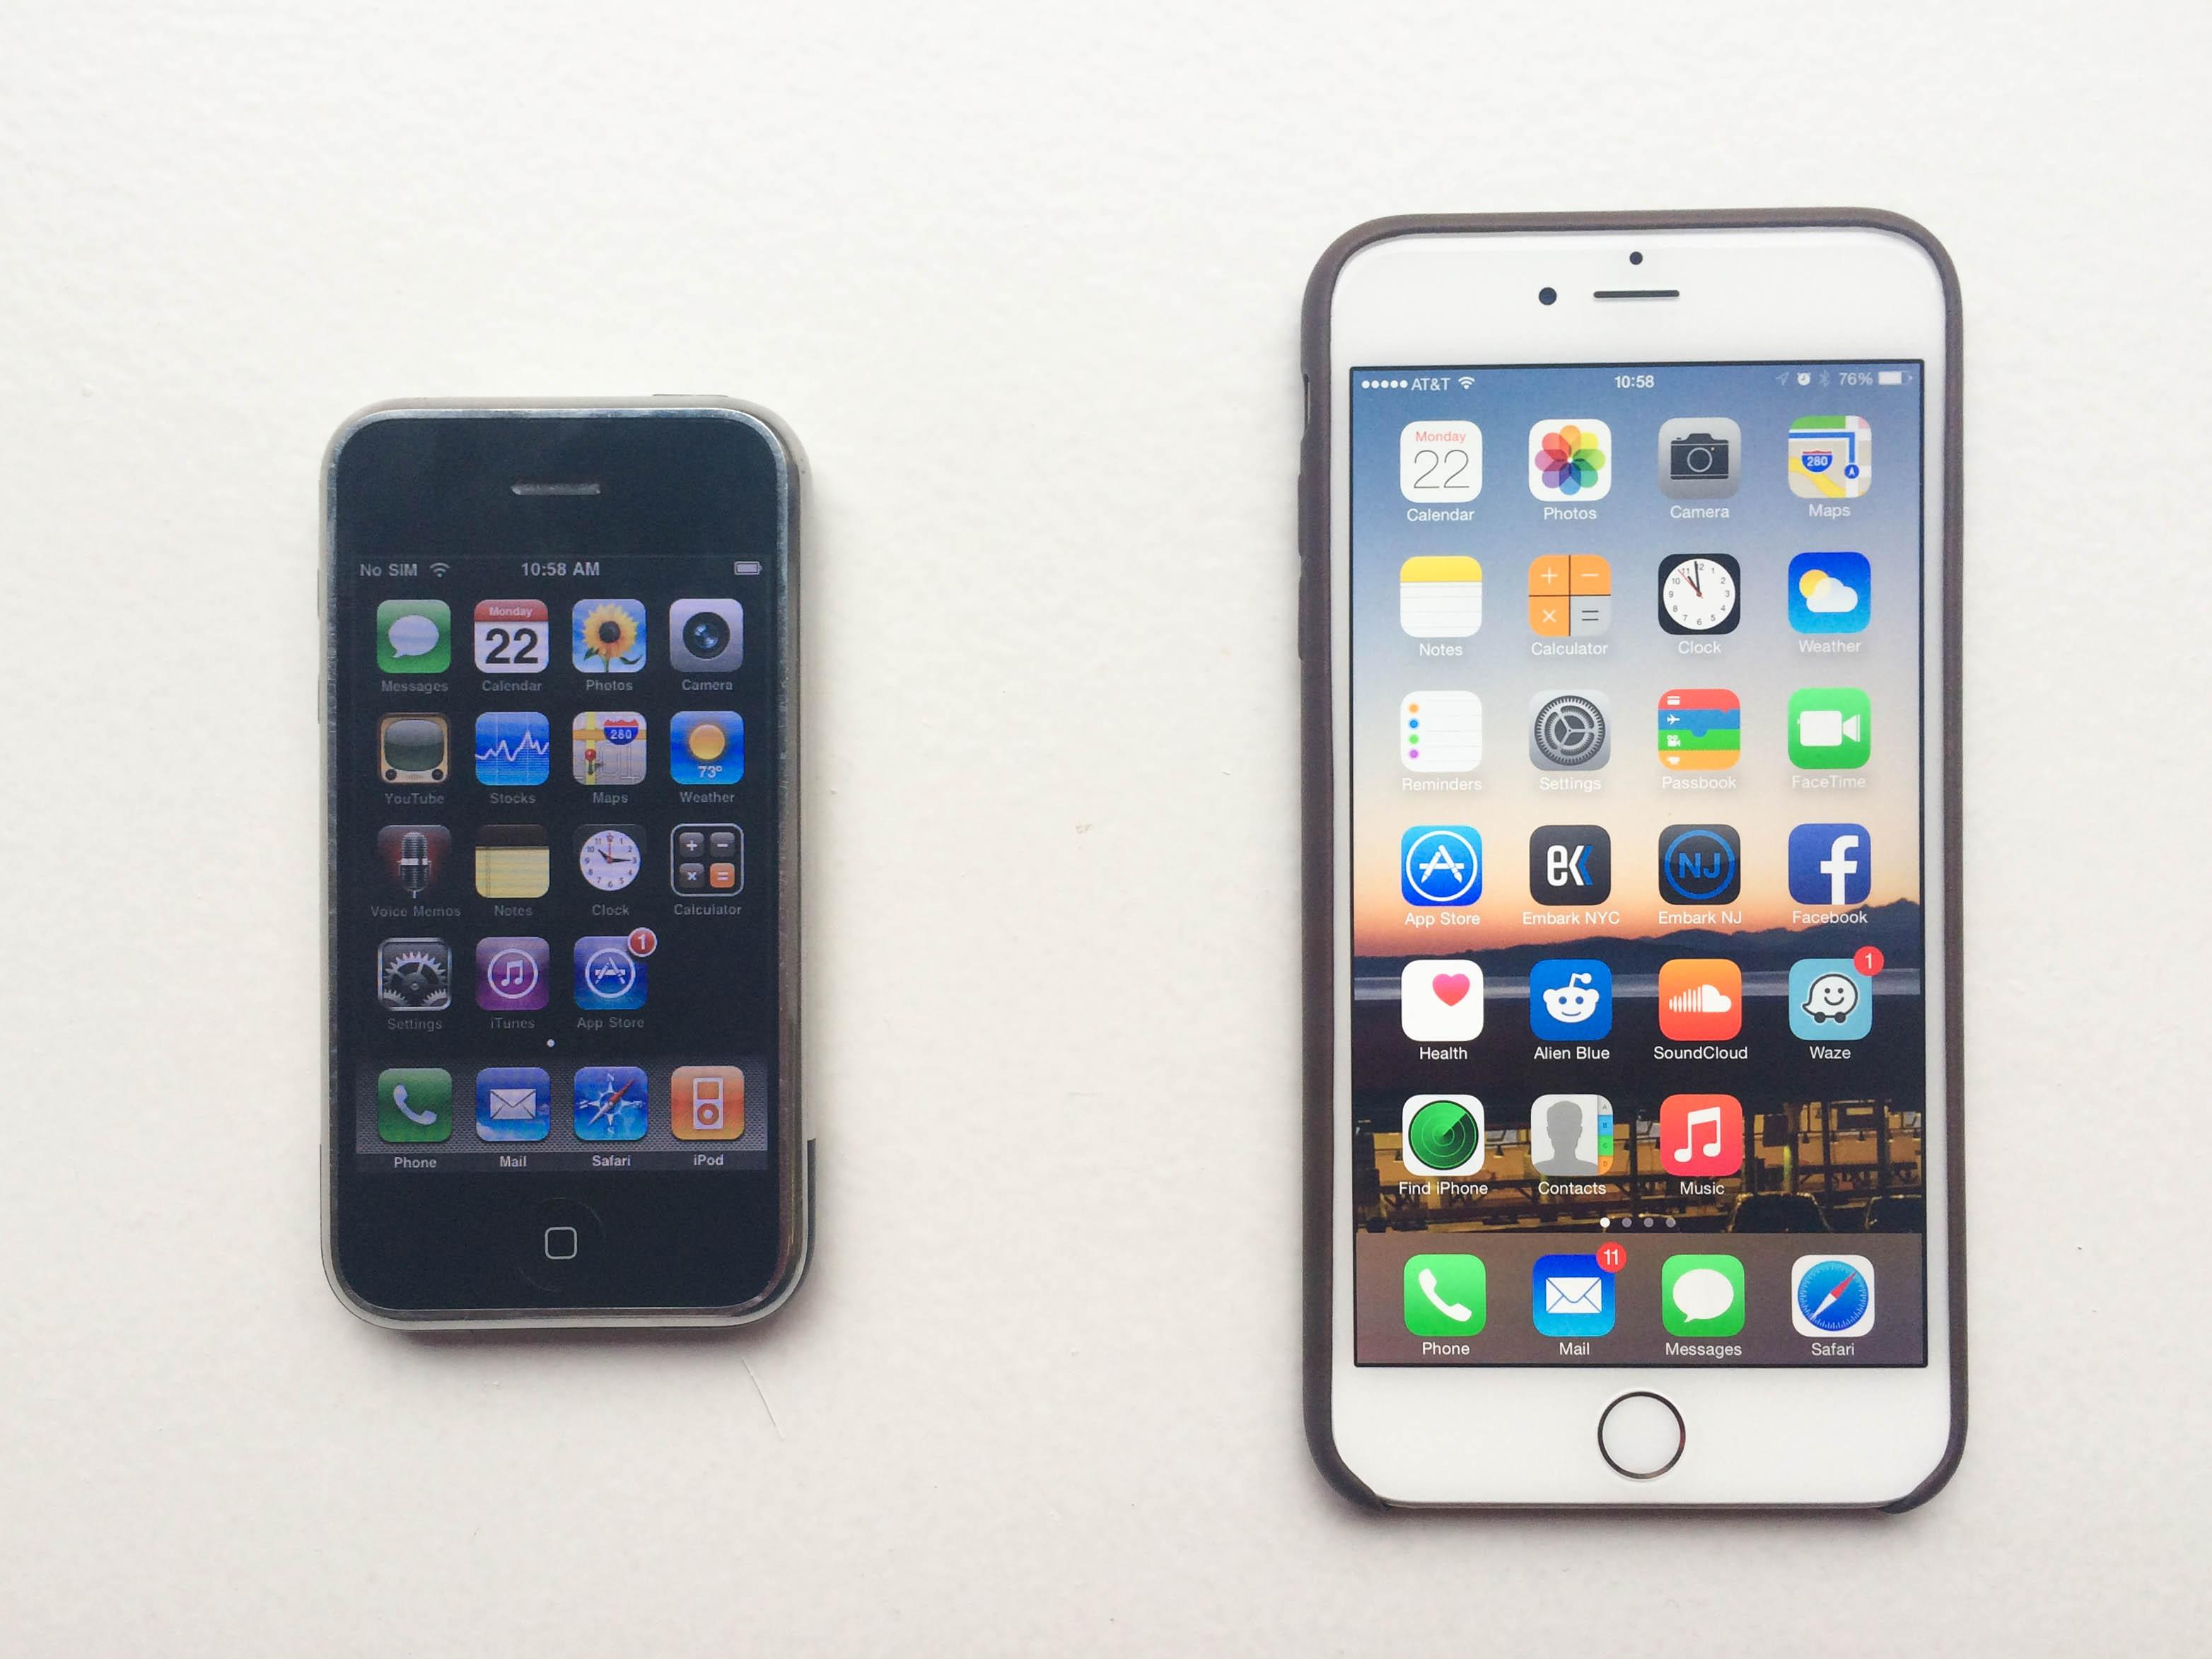 iPhone vs iPhone 6 Size